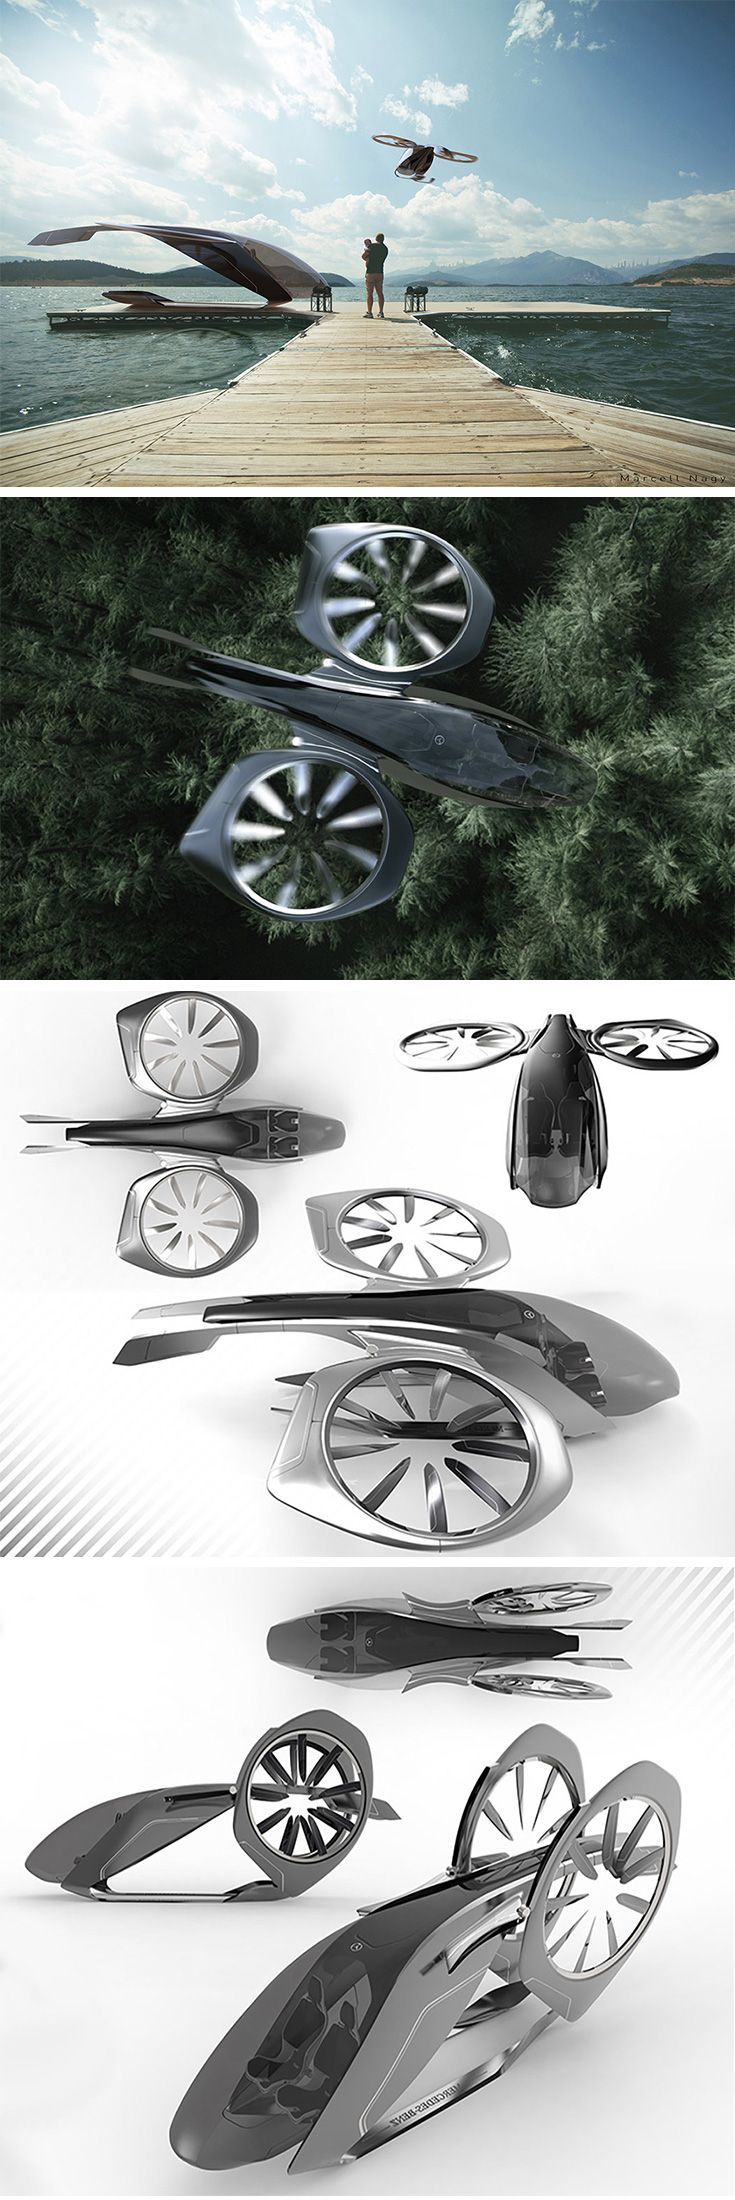 Sky2Go Represents the future of ride-sharing, this drone concept applies the Mer...